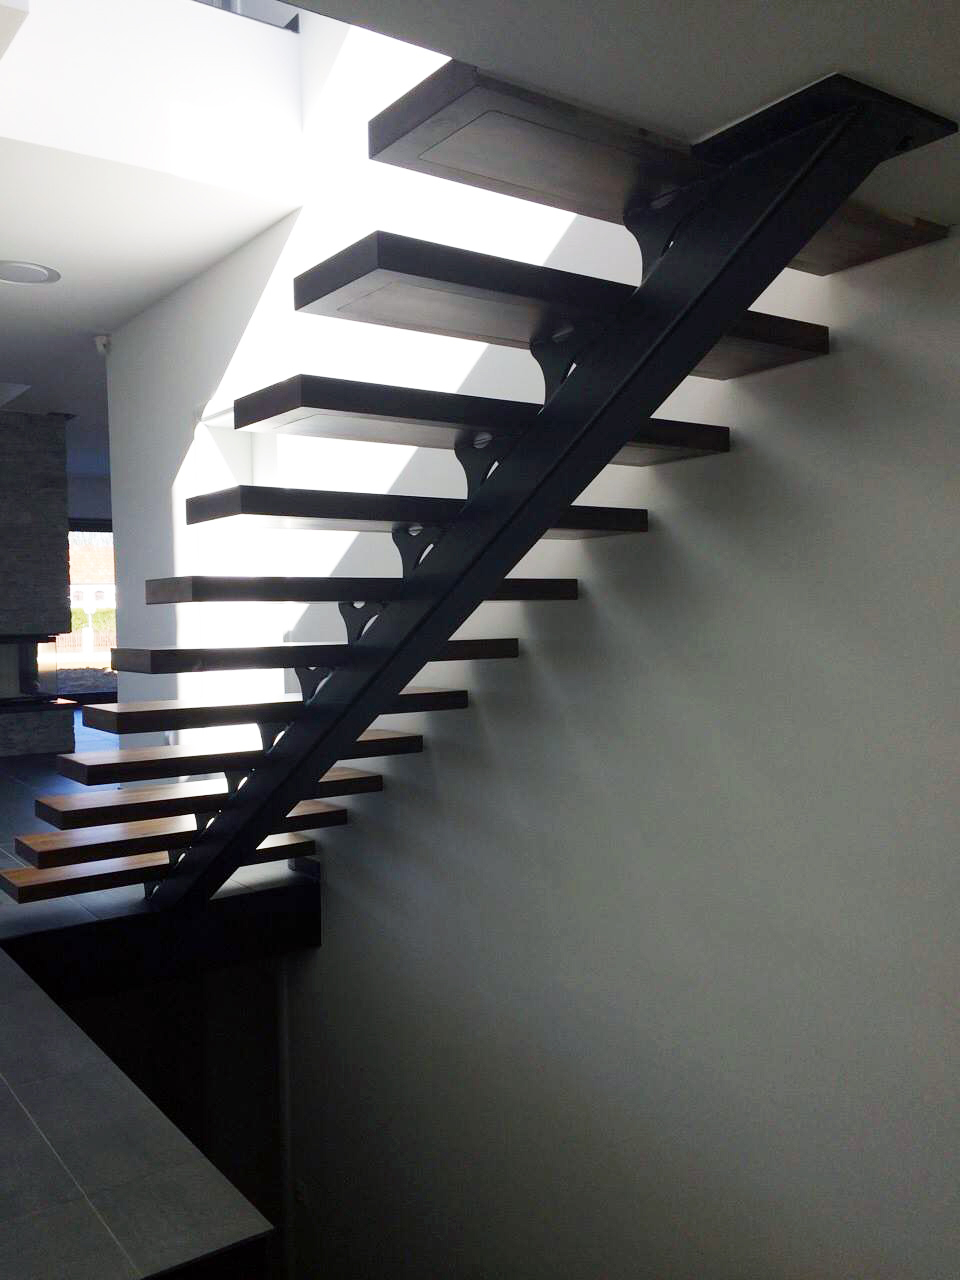 Attractive Steel As Construction Material For Stairways Production, In Comparison With  Other Materials, Offers Optimum Bearing Capacity And Longevity.